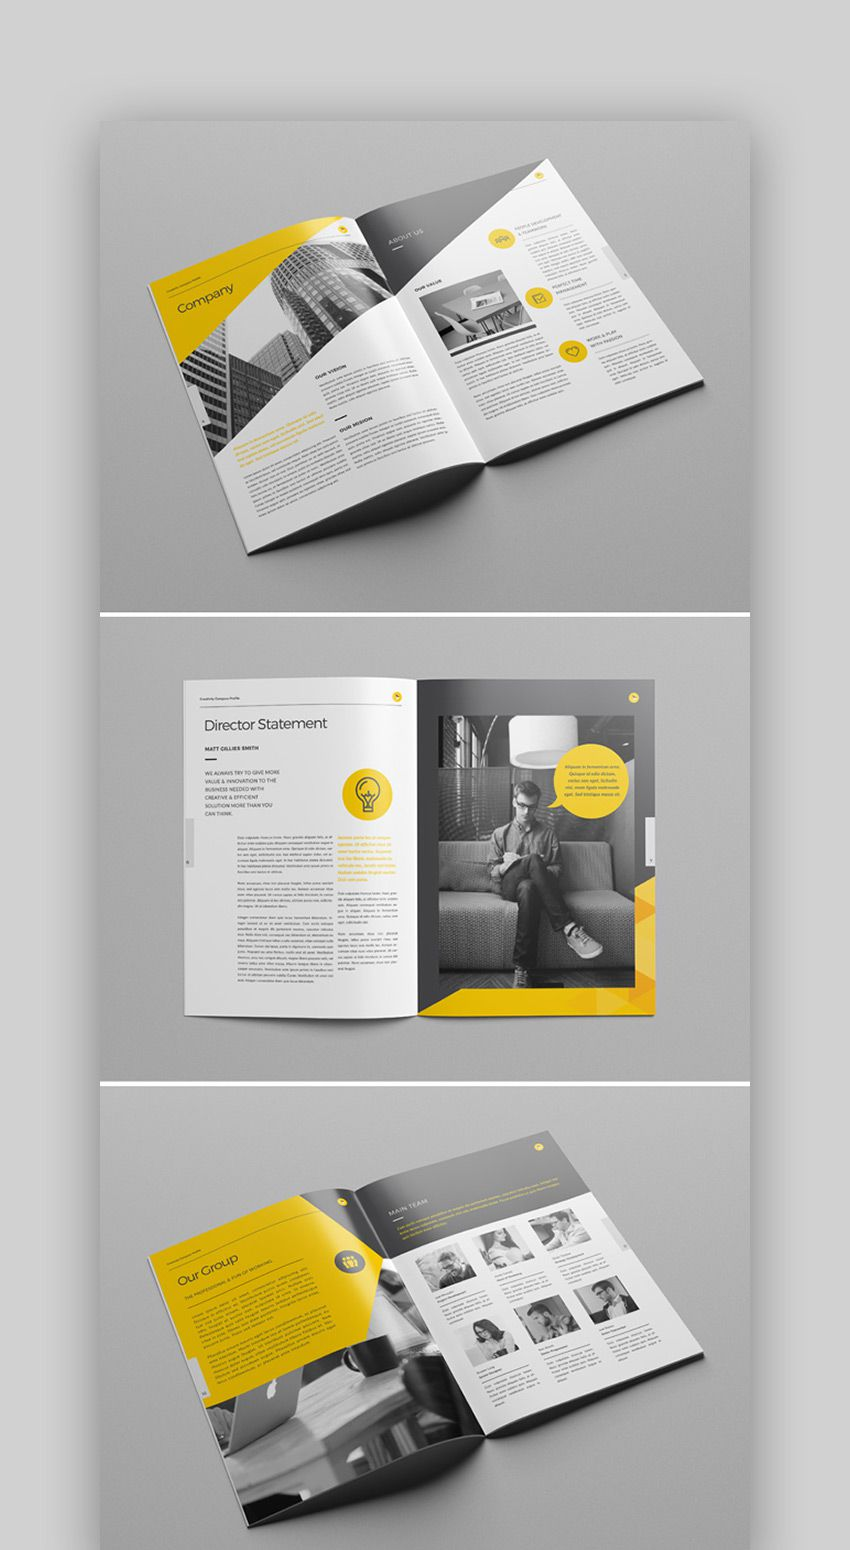 009 Outstanding Indesign A4 Brochure Template Free Download Highest Clarity Full